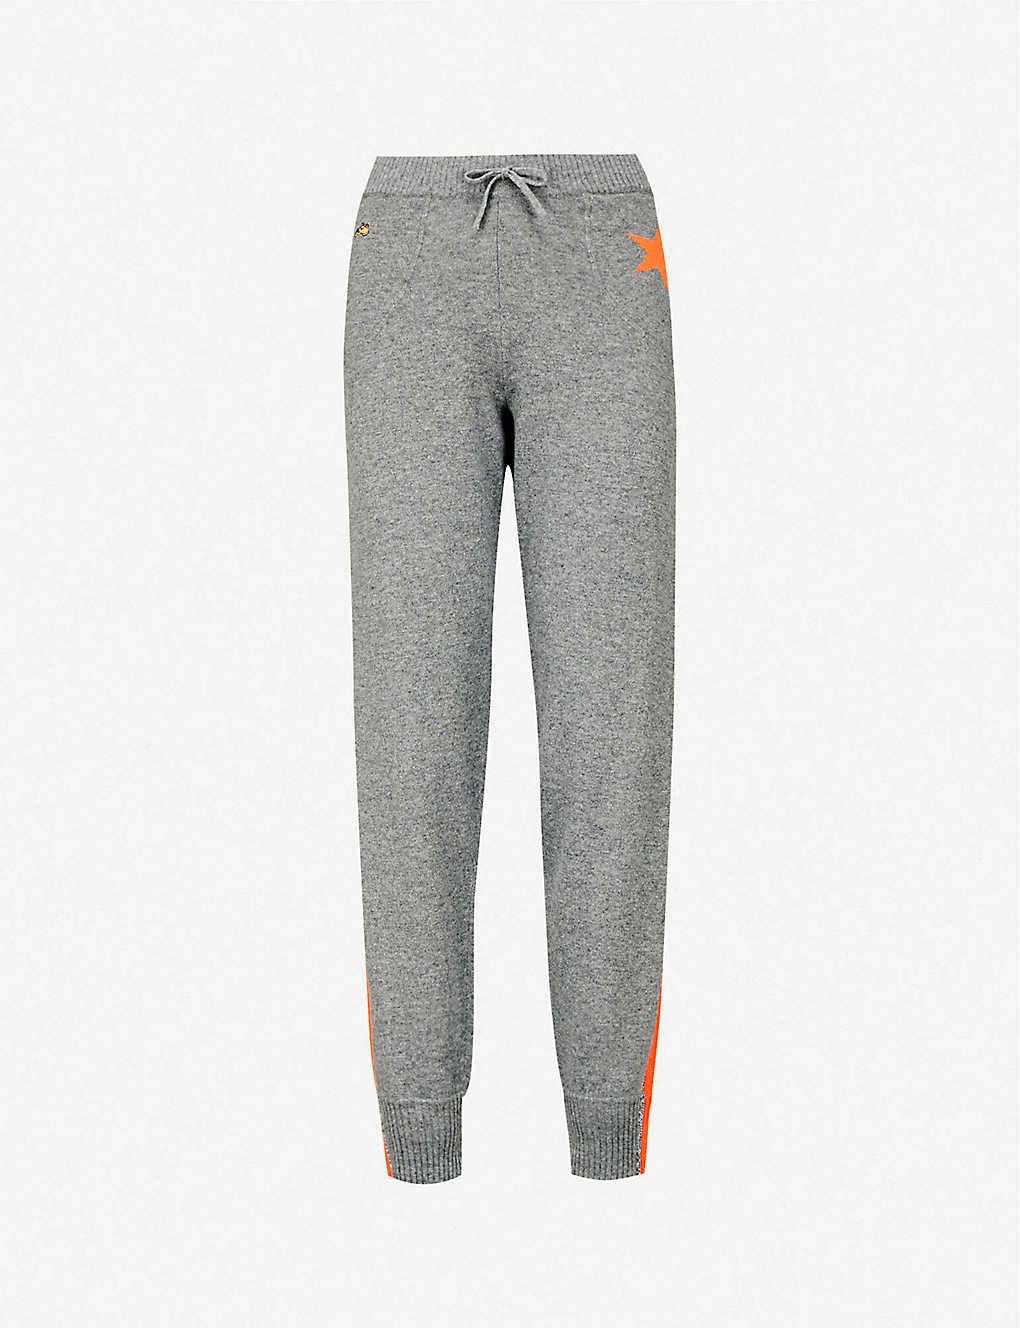 77744c6e BELLA FREUD - Billie cashmere jogging bottoms | Selfridges.com